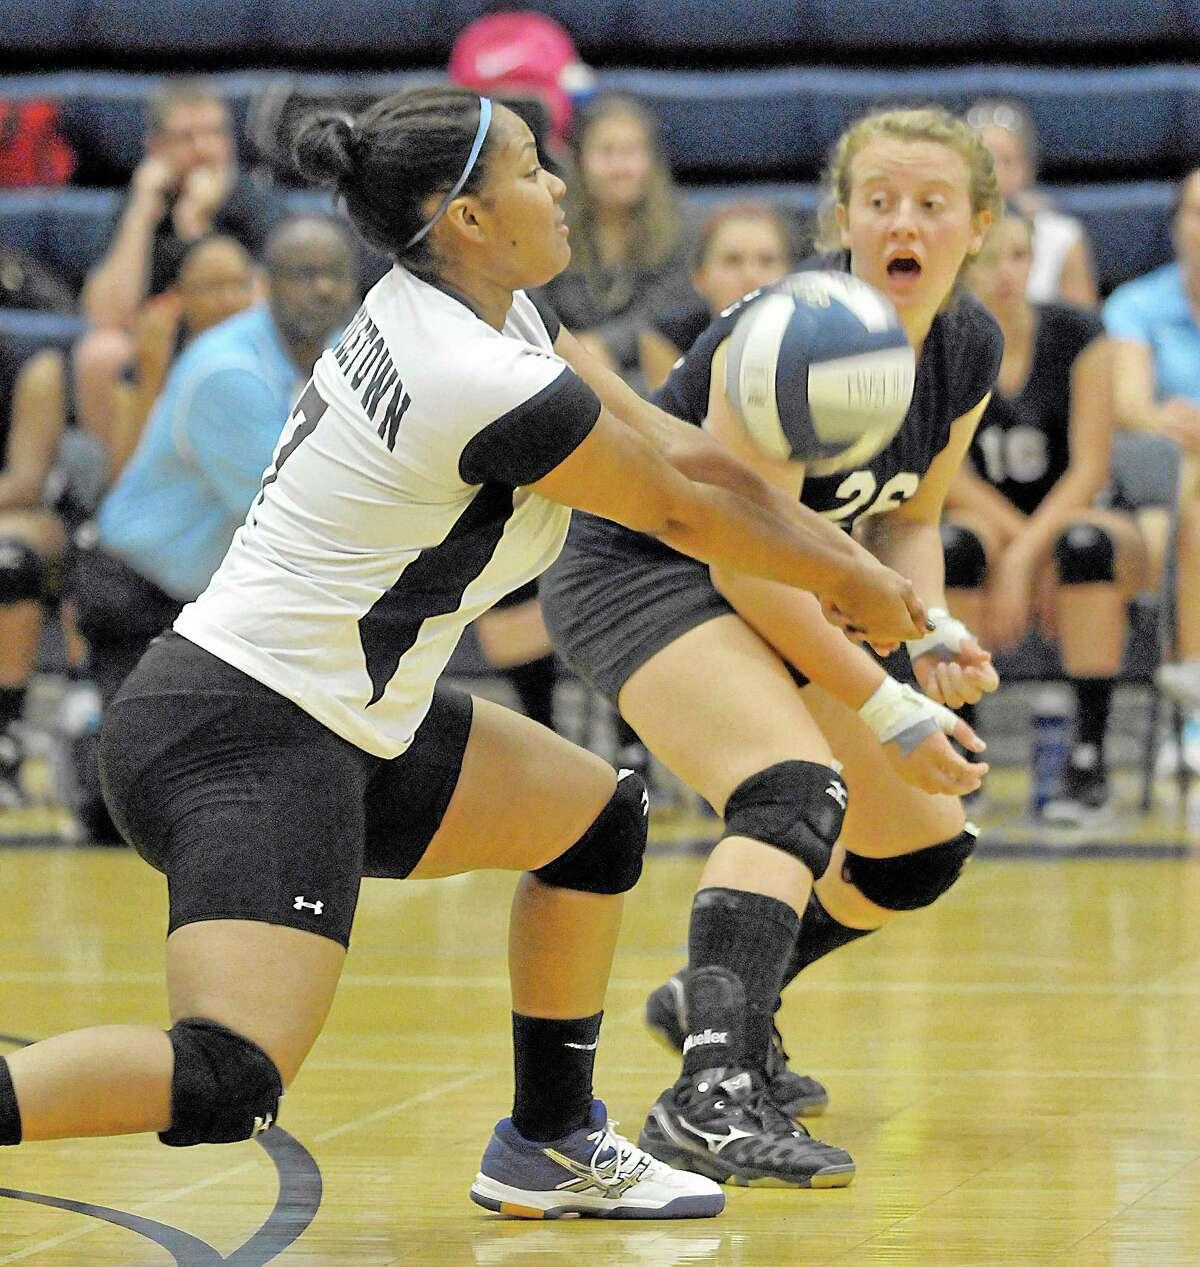 Middletown's Kyra Culup cheers on Tamyia King as she receives a serve from Bristol Eastern Wednesday evening. Bristol Eastern won all three sets, 25-15, 25-13, and 25-17.